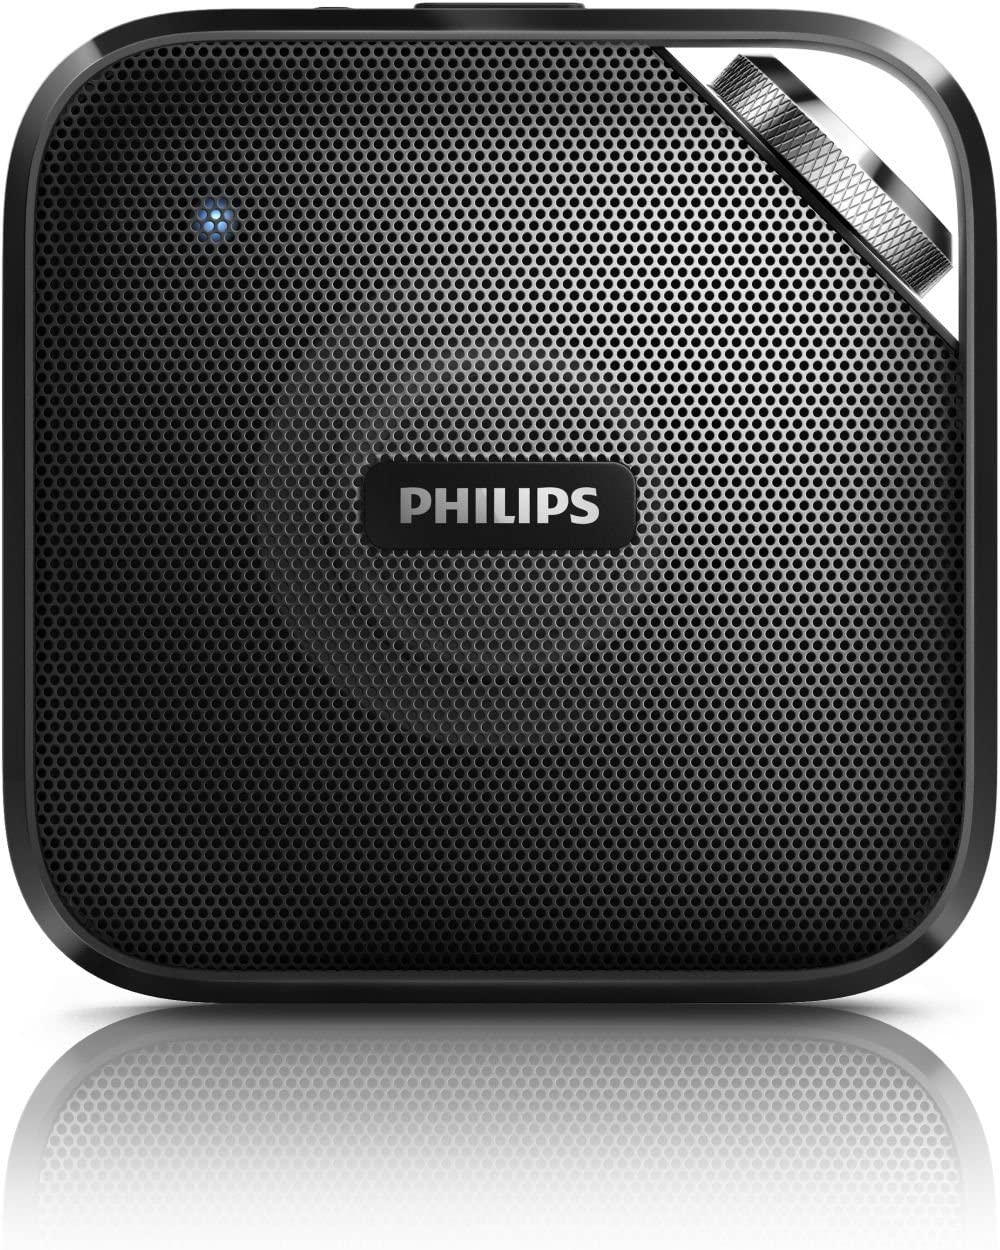 Philips BT2500B 37 Compact Wireless Portable Bluetooth Speaker